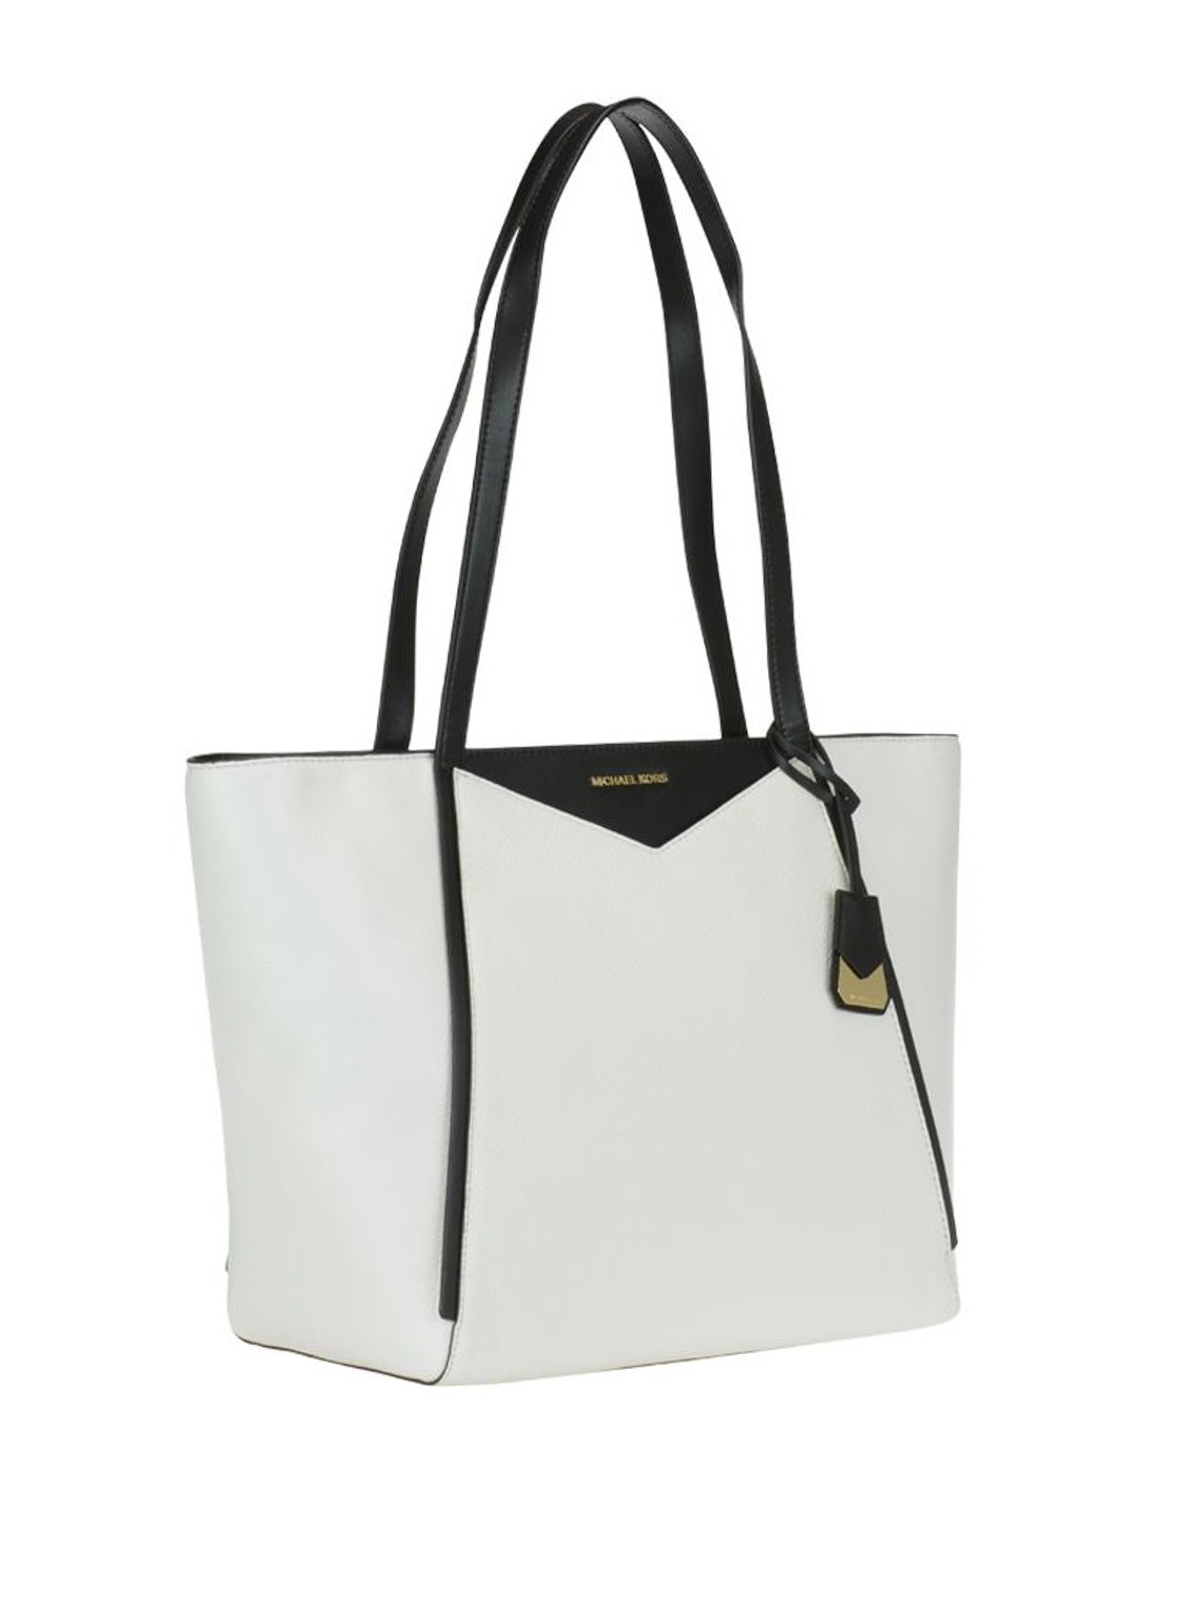 2768ec4a0e46 MICHAEL KORS: totes bags online - Whitney bicolour leather large tote